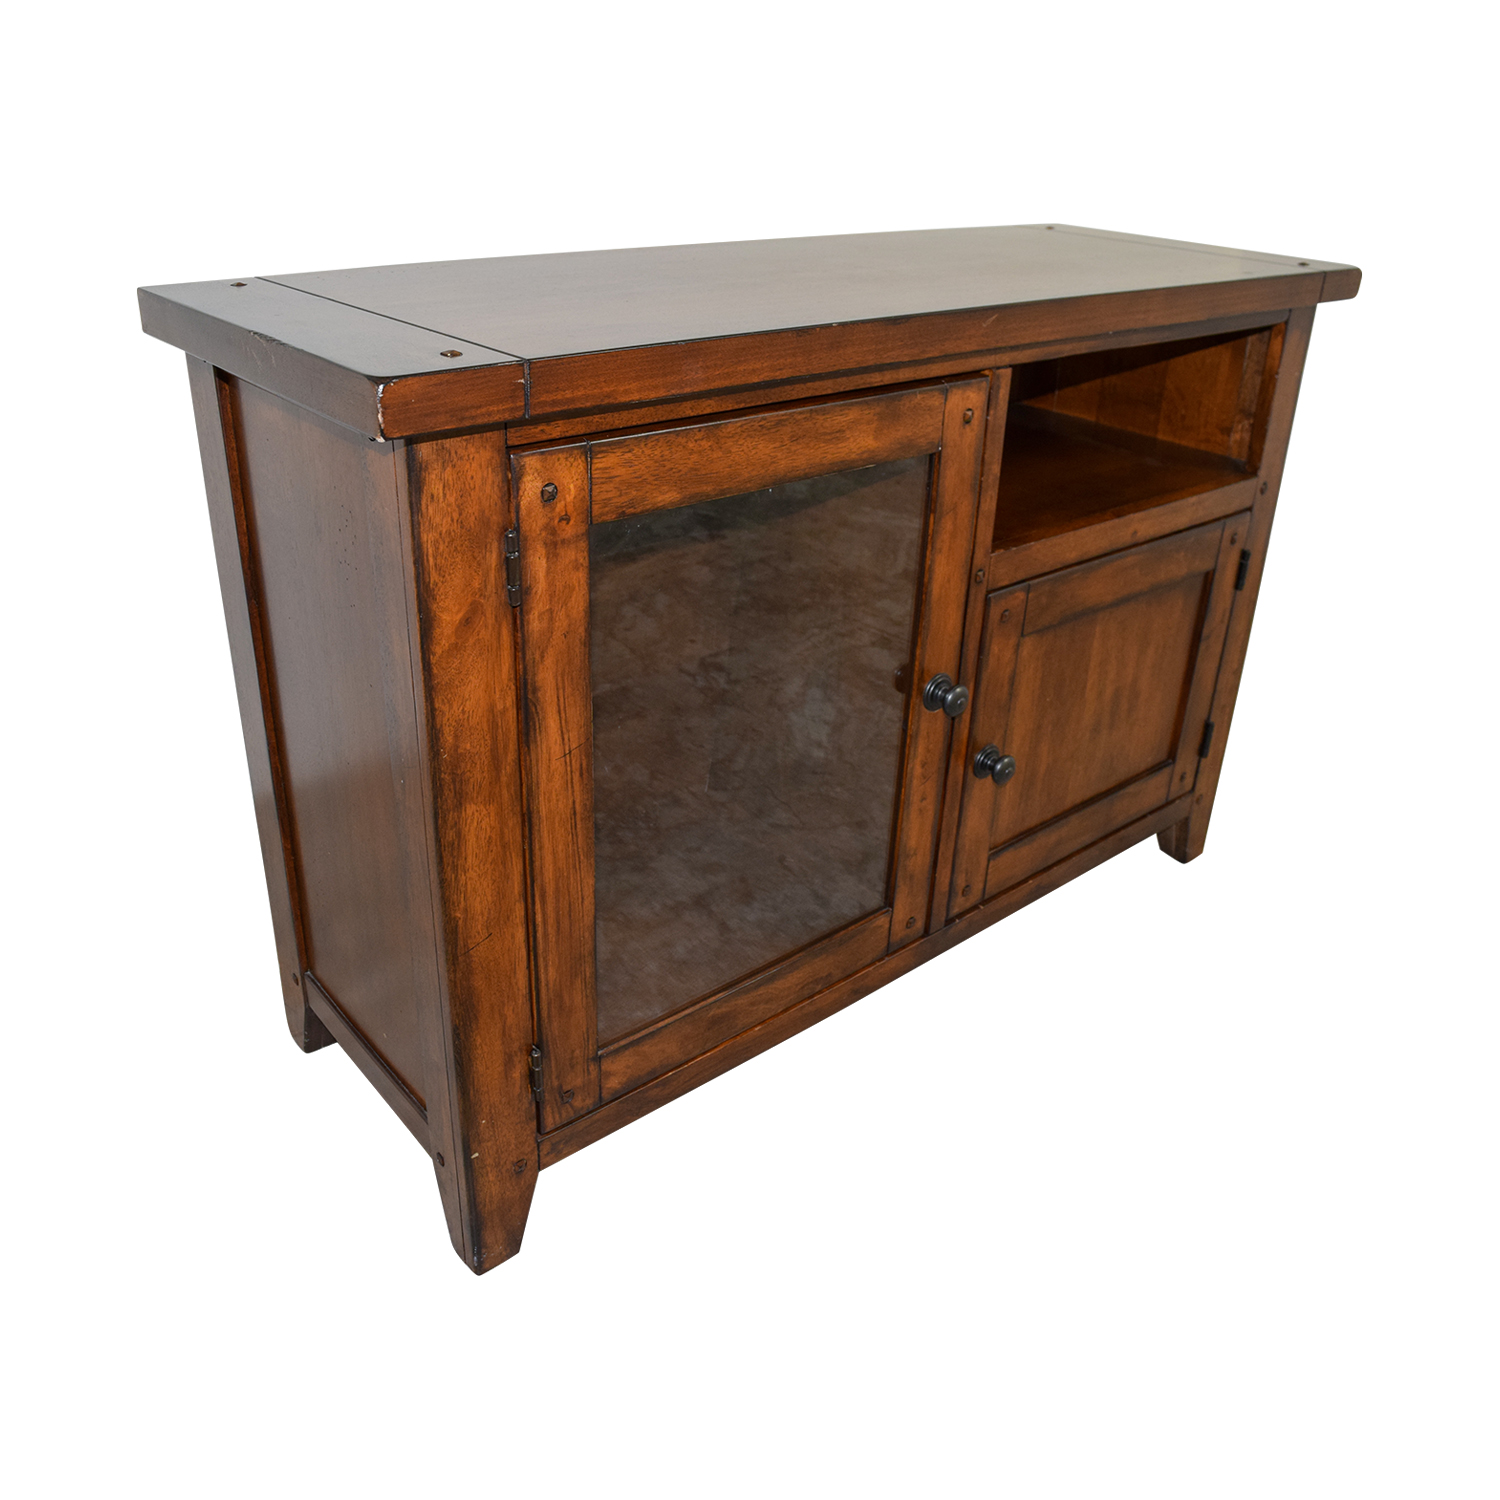 ... Pottery Barn Wood And Glass Media Console / Storage